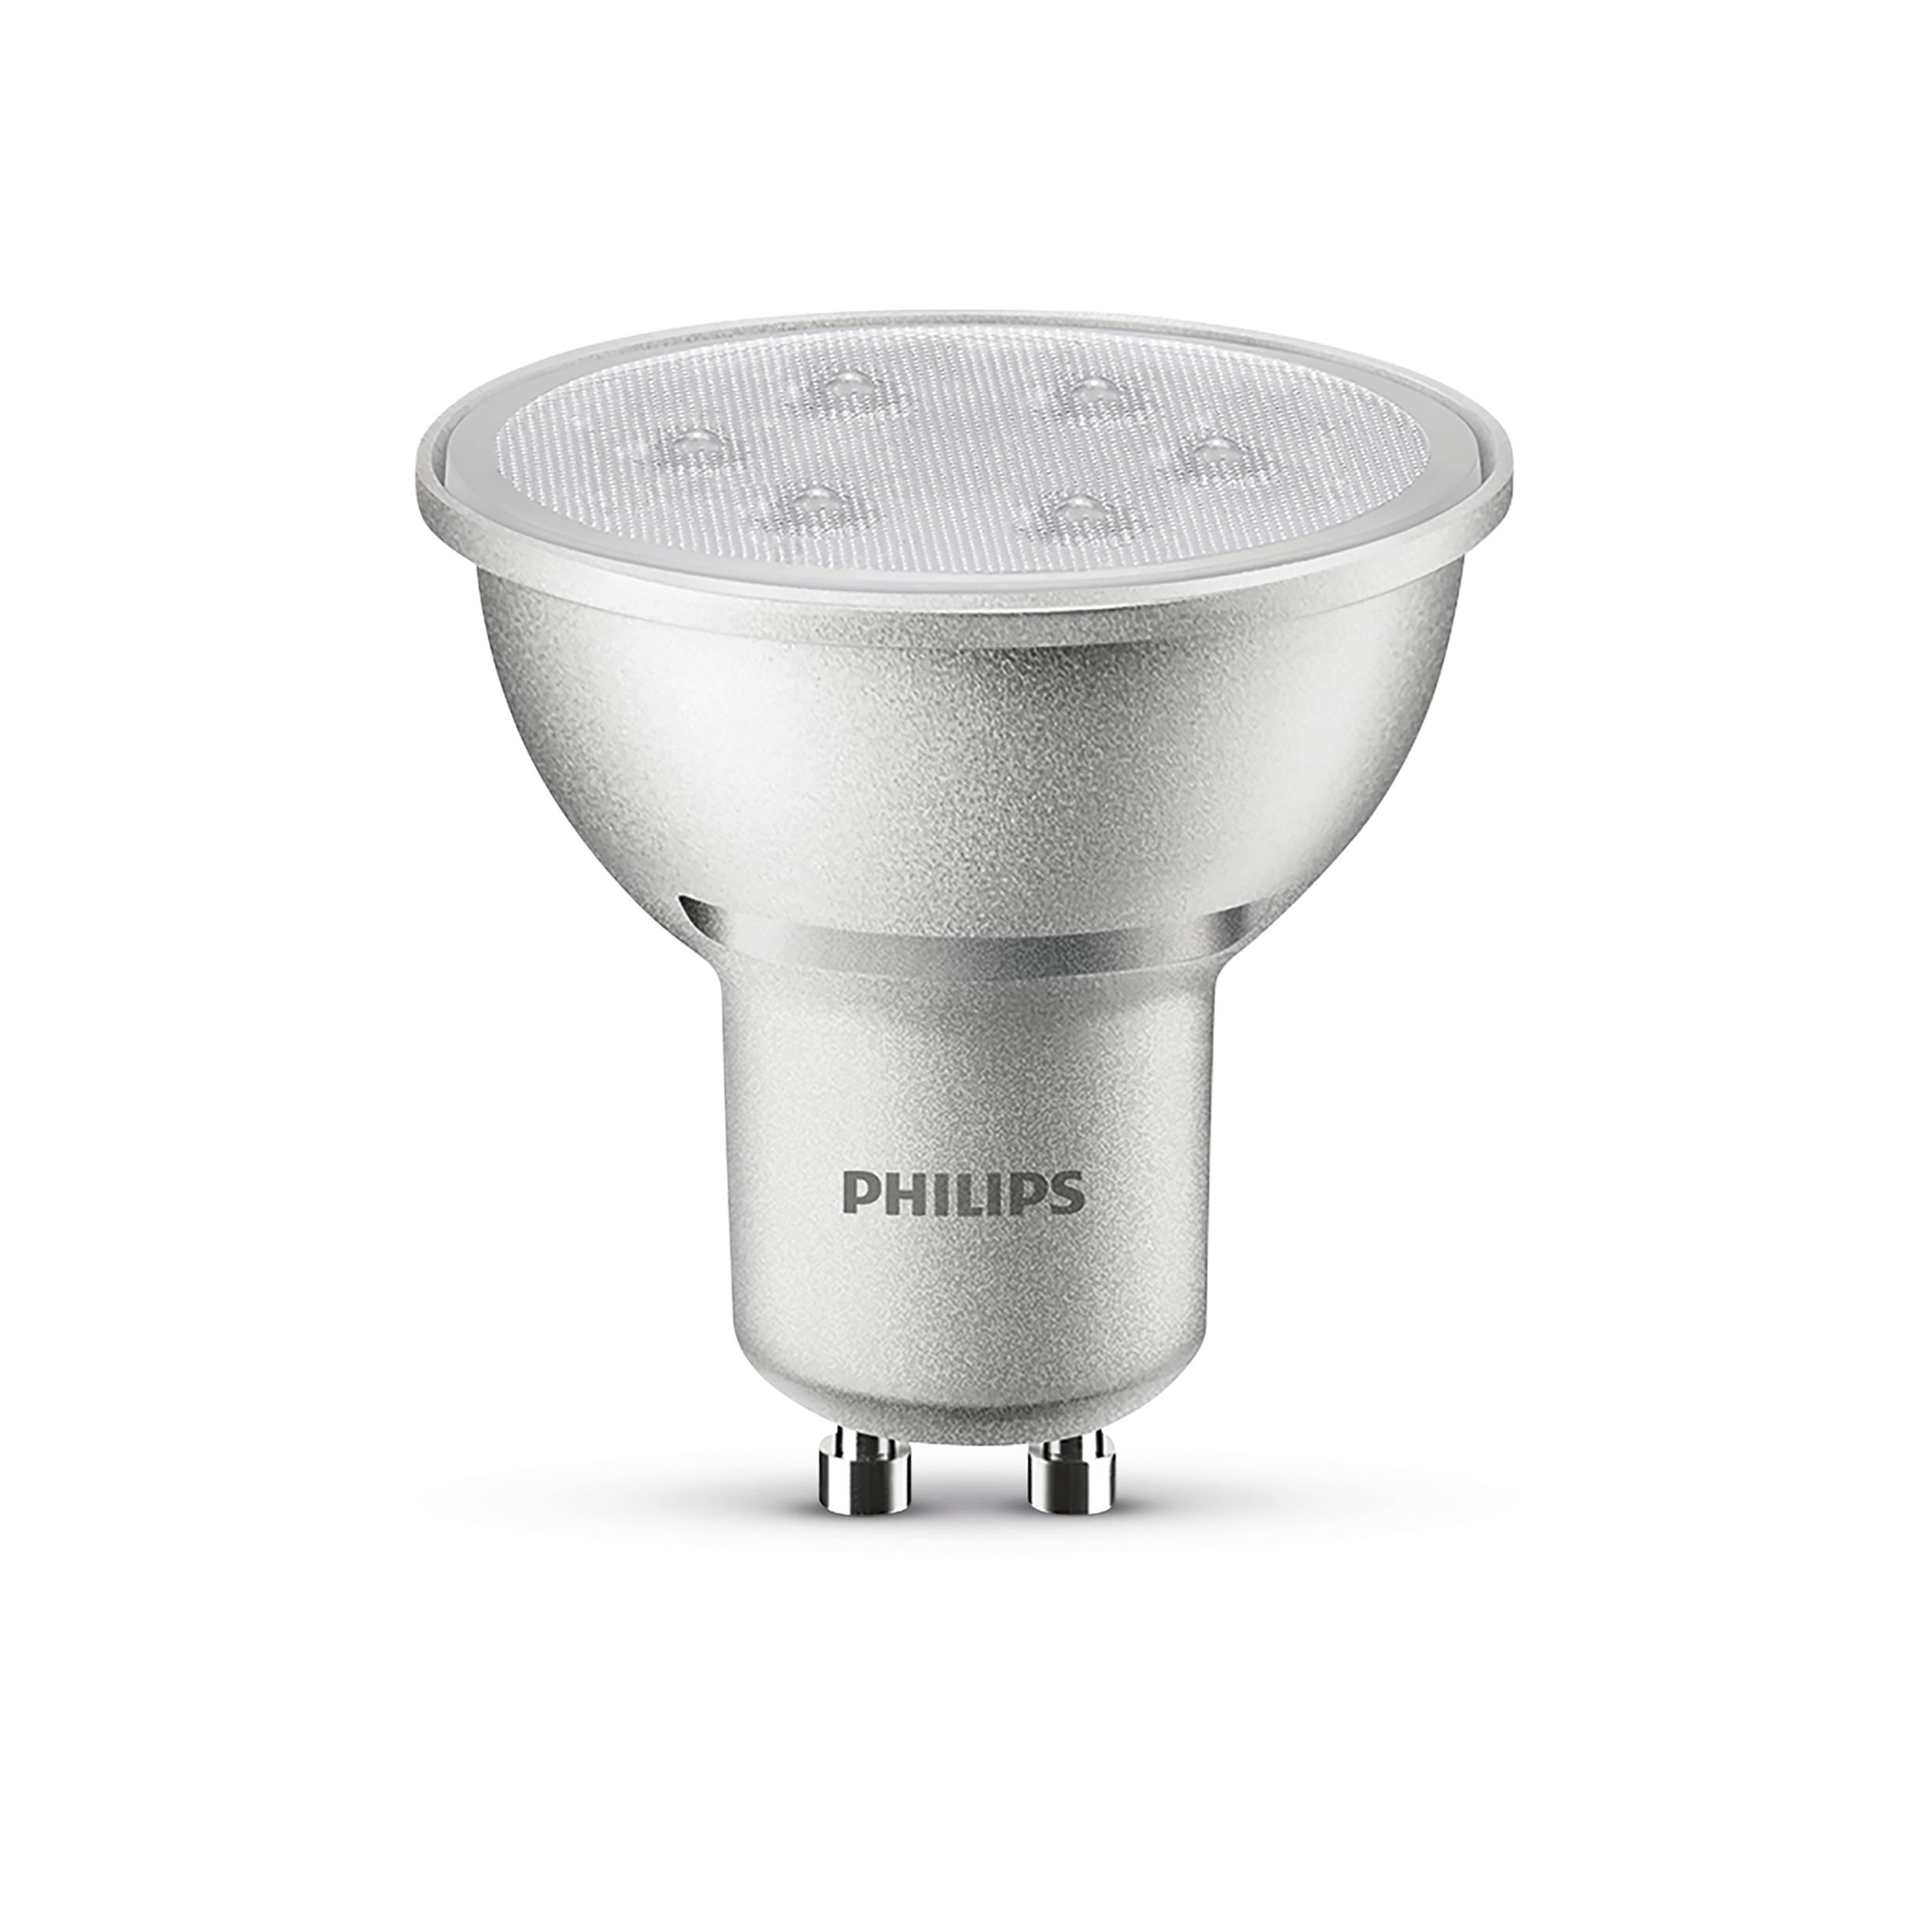 philips gu10 240lm led dimmable reflector spot light bulb. Black Bedroom Furniture Sets. Home Design Ideas